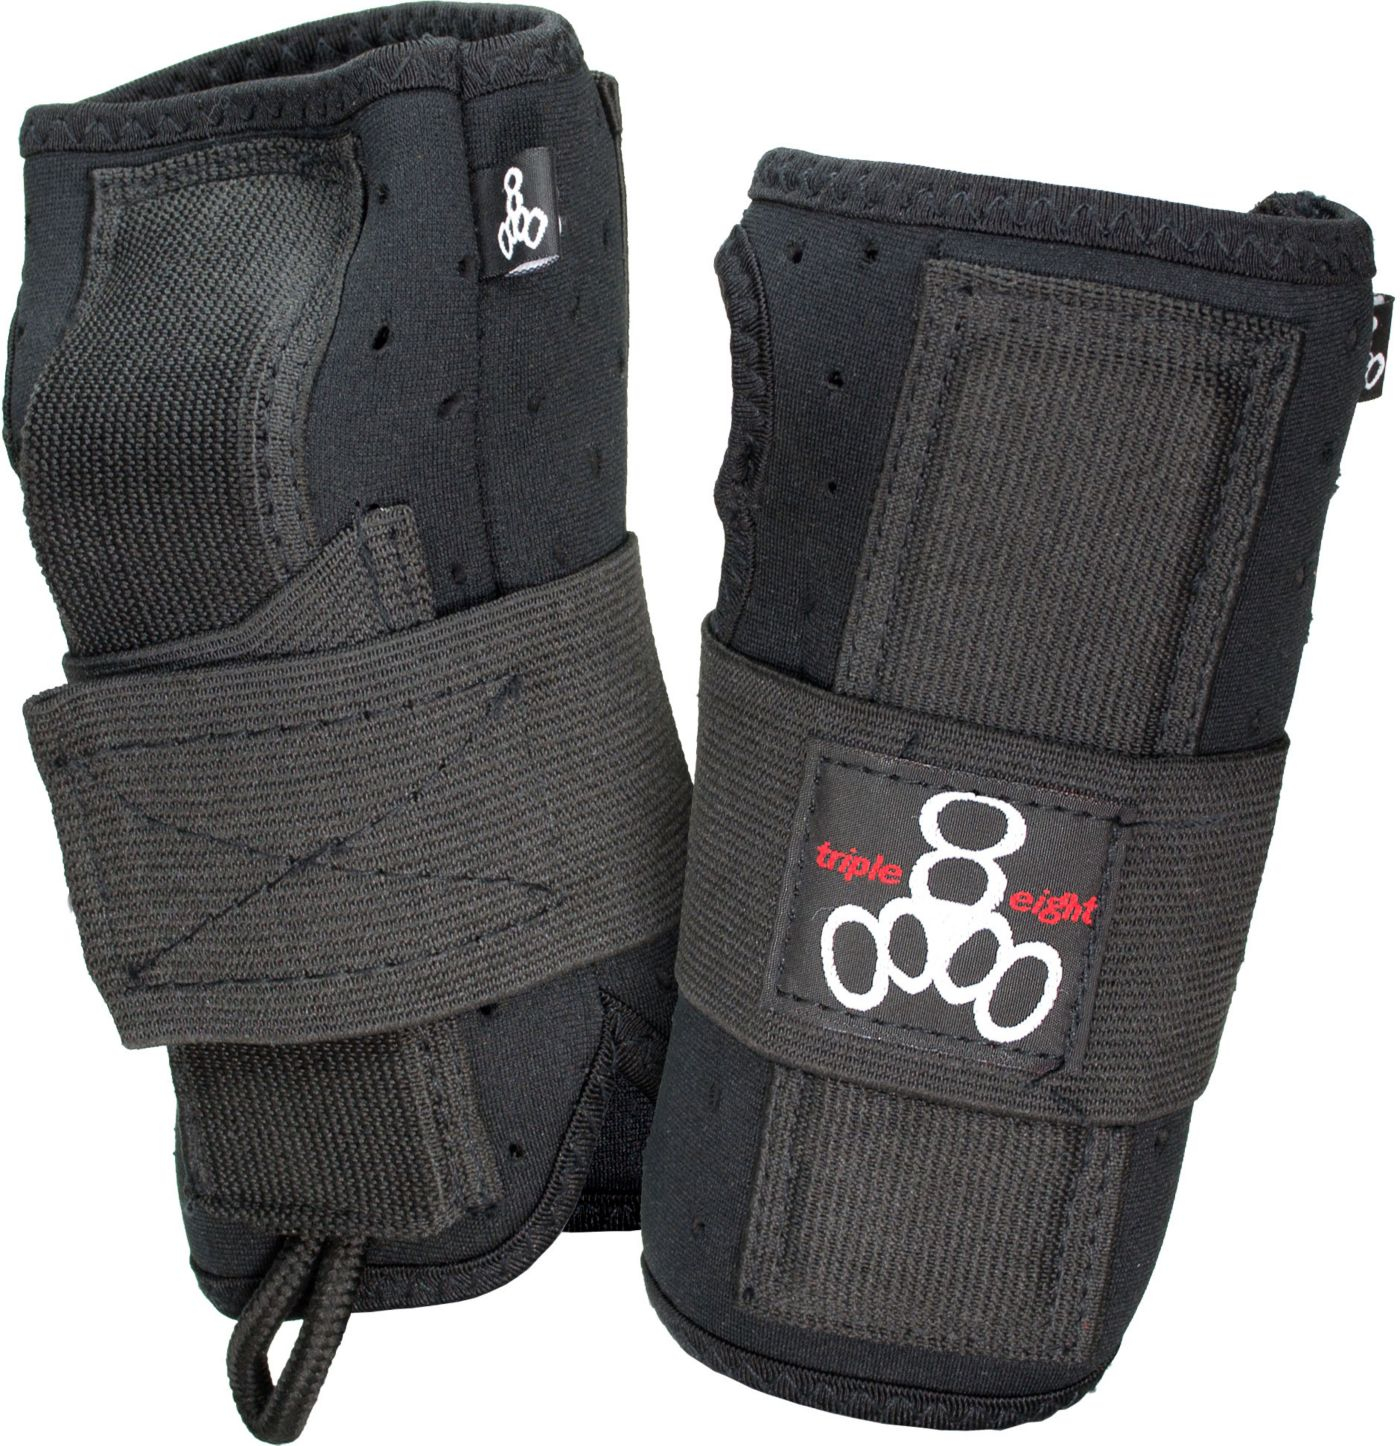 Triple Eight Undercover Snowboarding Wrist Guards